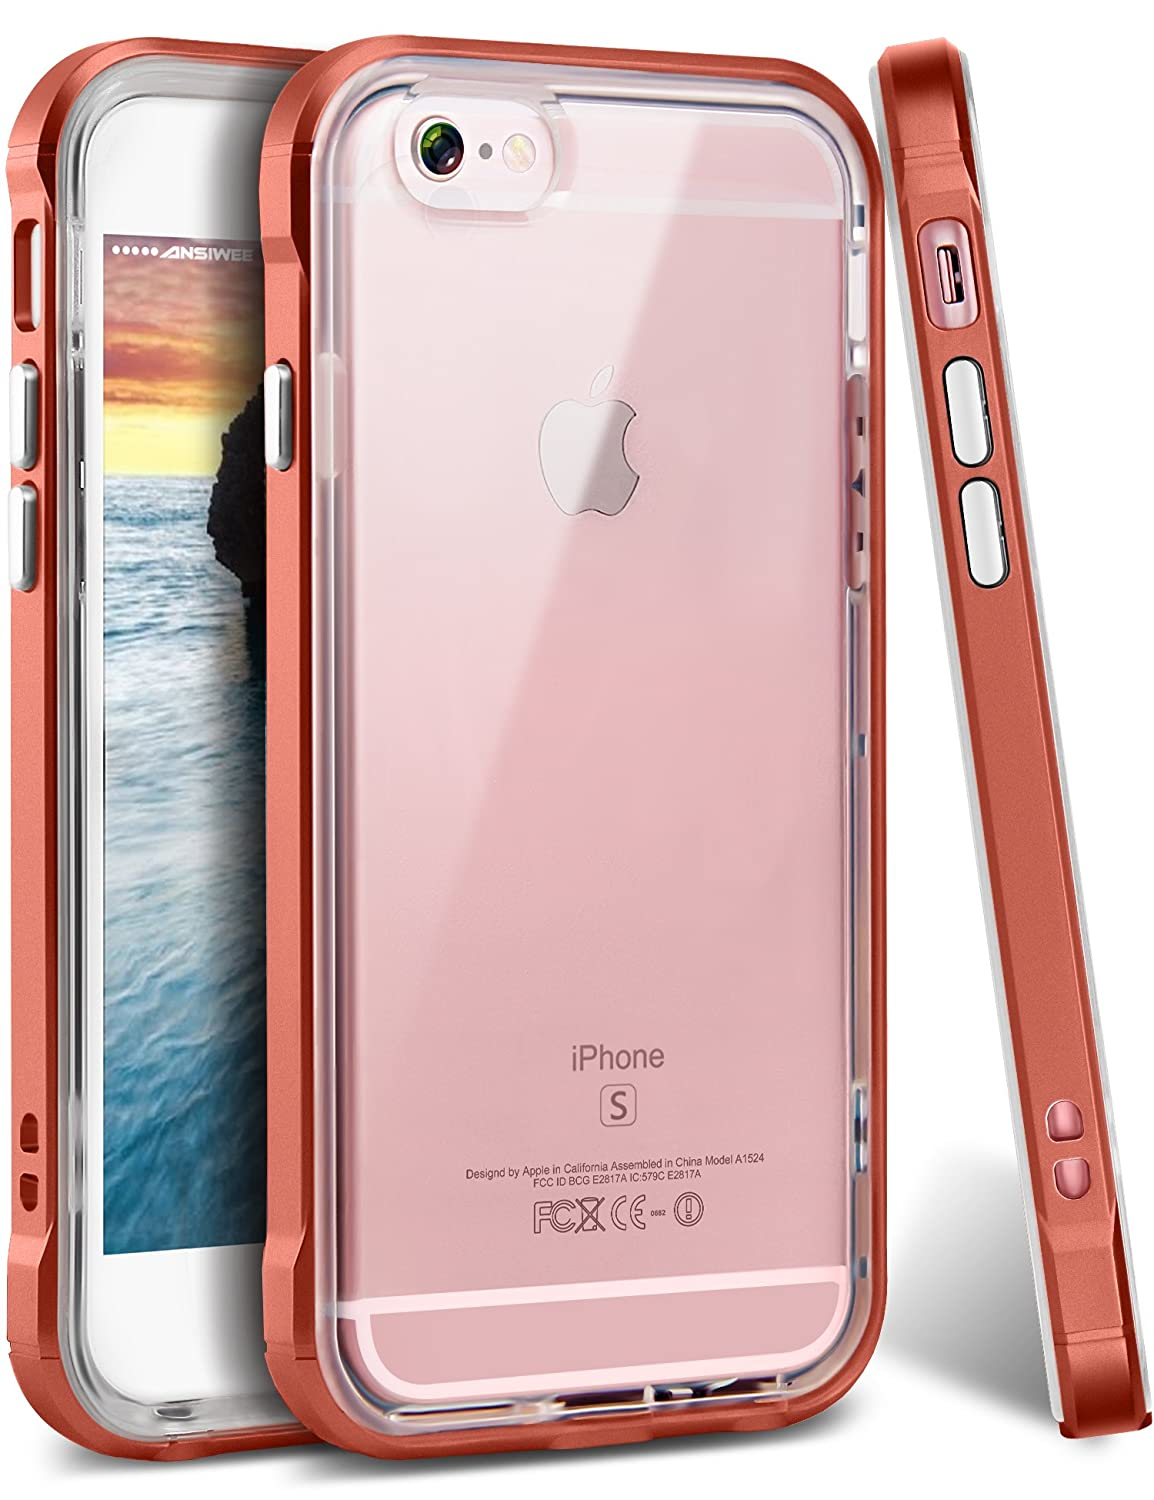 Amazon.com: iPhone 6s Plus Case, Ansiwee Reinforced Frame Crystal ...